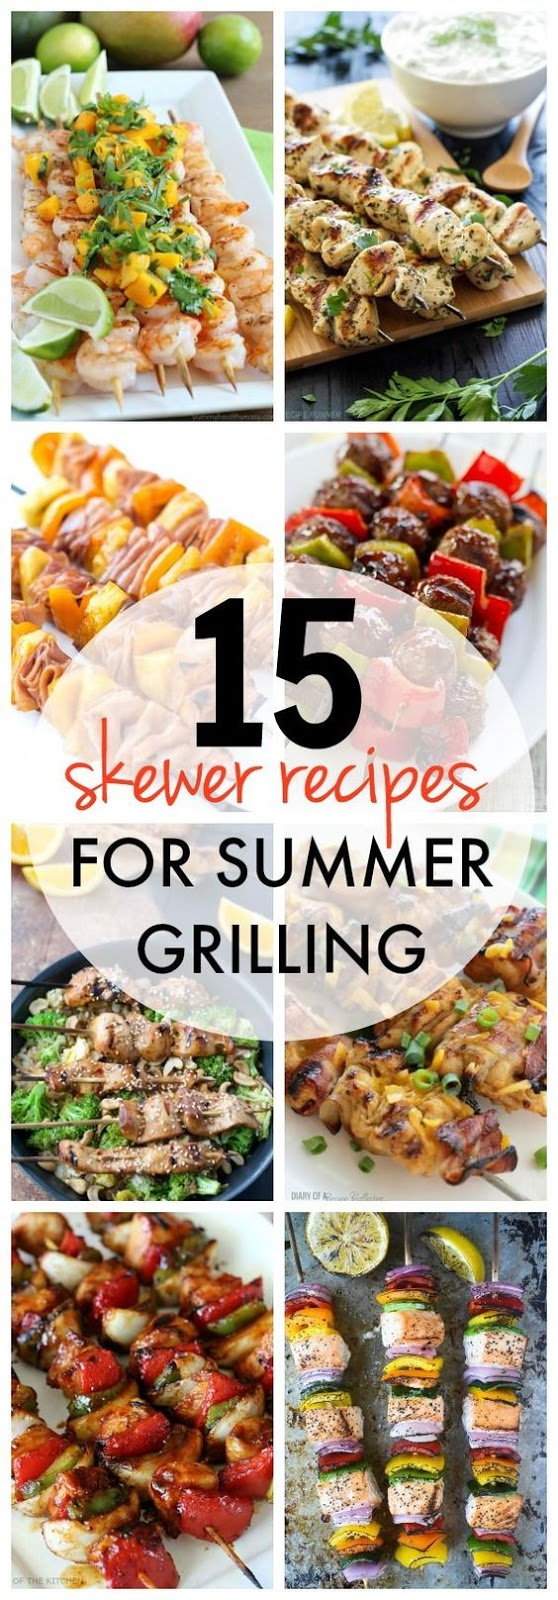 15 SKEWER RECIPES FOR SUMMER GRILLING